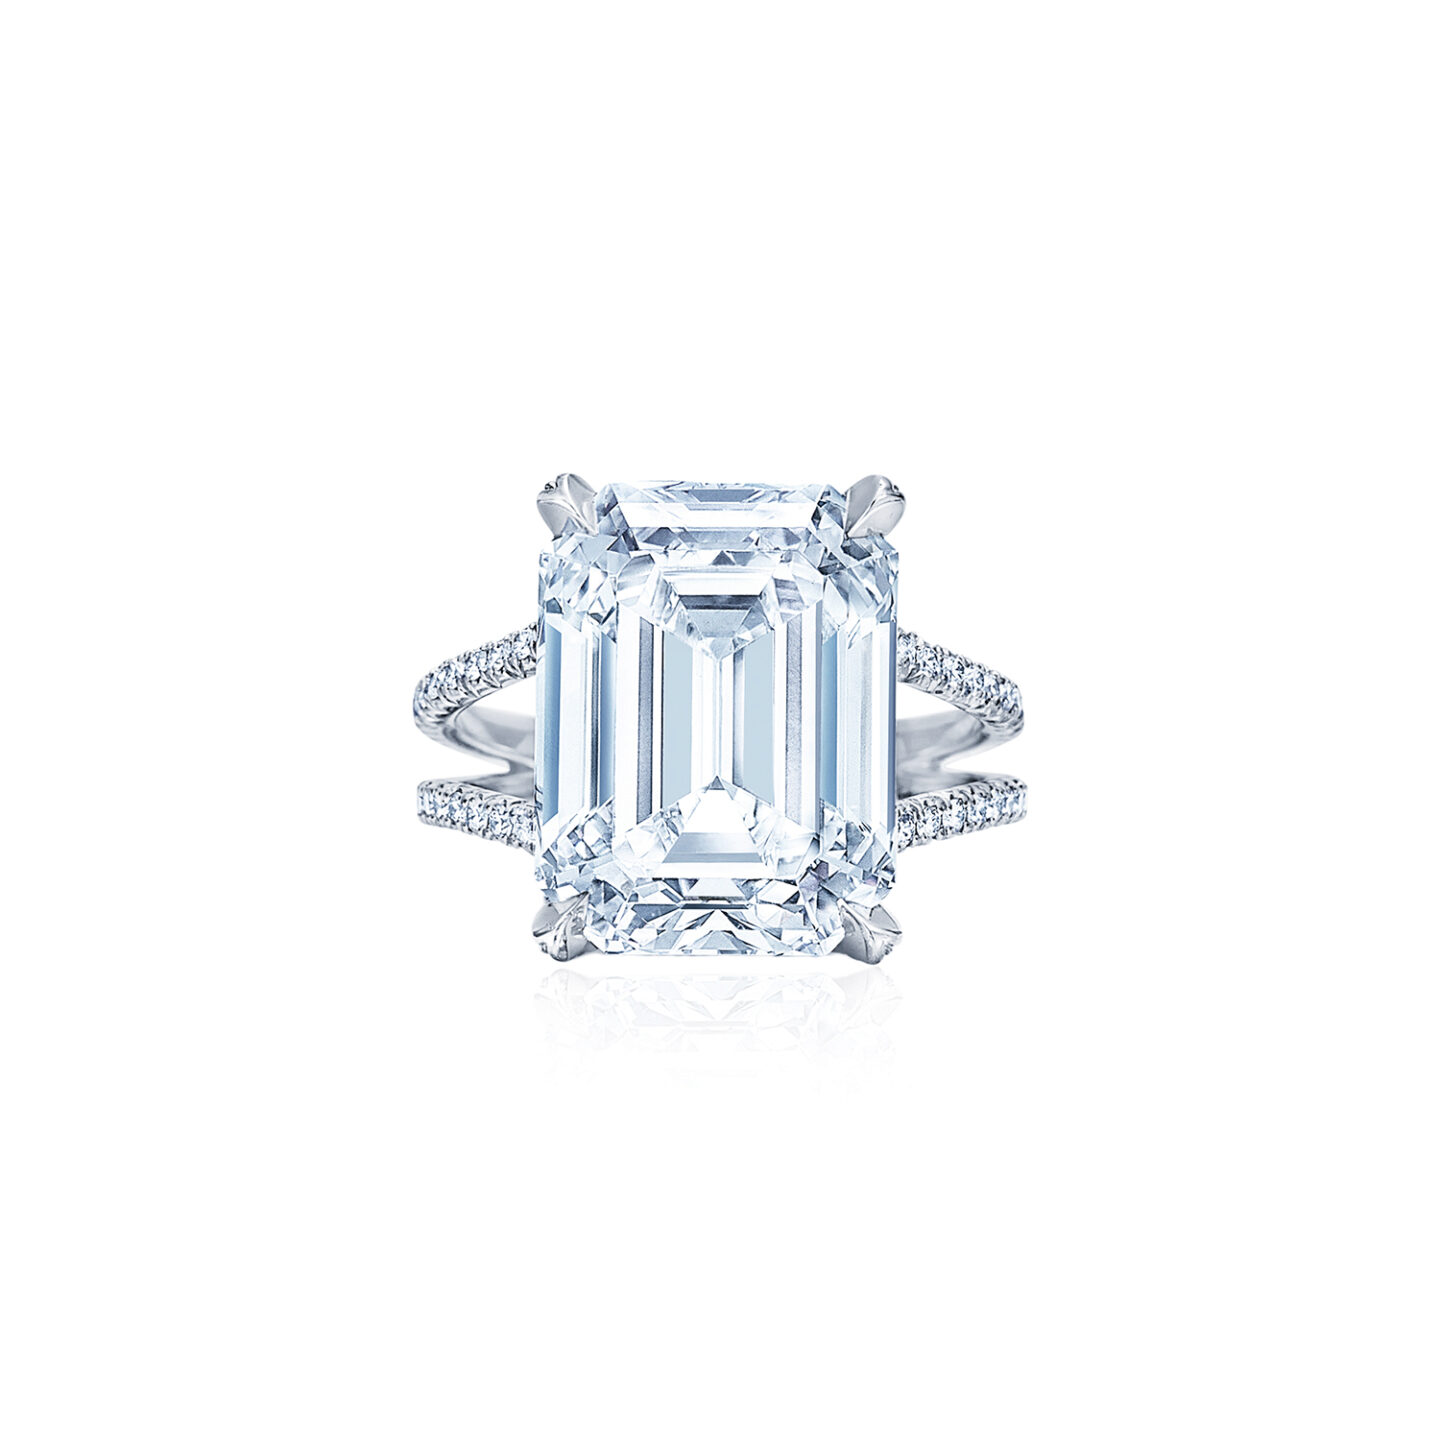 Emerald Cut Diamond Engagement Ring With A Wide Split Diamond Band In Platinum Kwiat